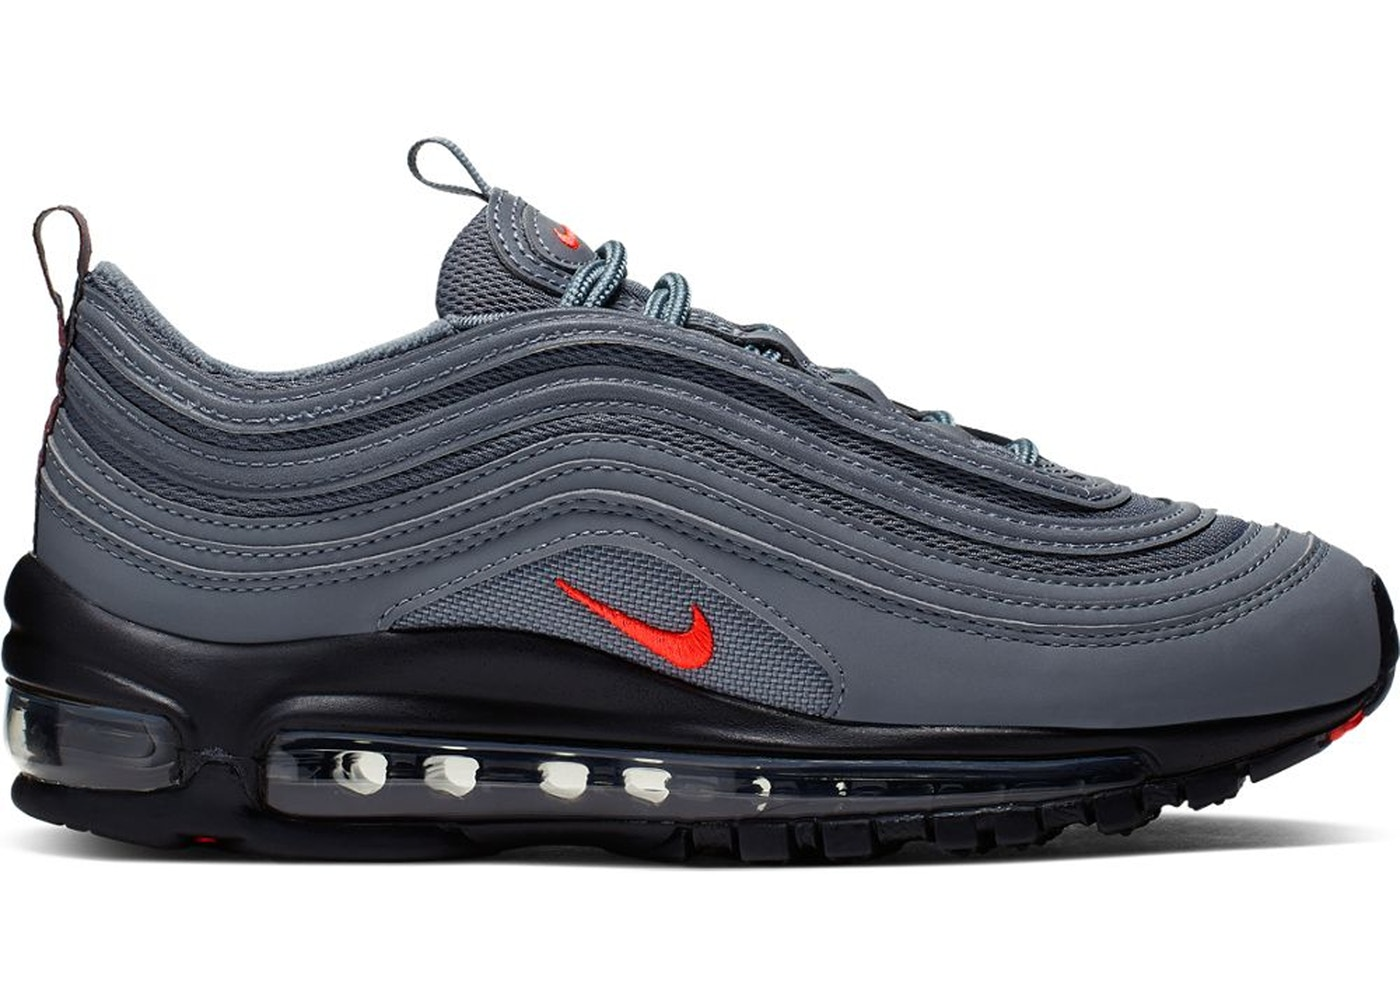 Nike Air Max 97 Dark Grey Black Crimson Gs Cq0359 001